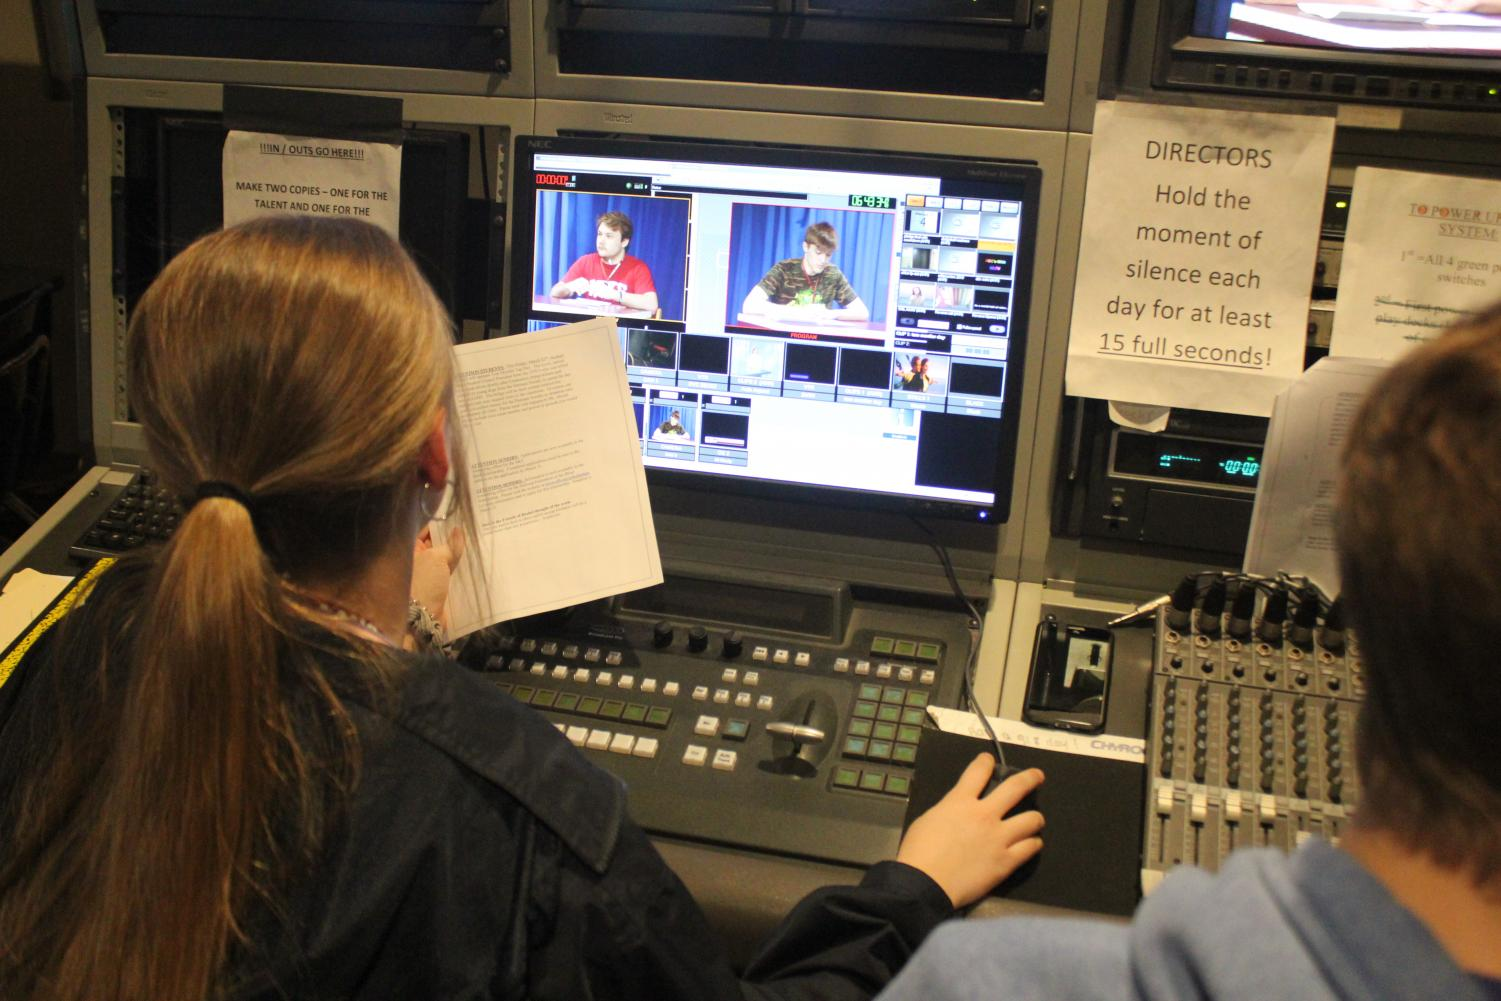 Last year's MLTV crew gets ready to start morning announcements.  This year's staff hopes to be up and running soon with a new format that allows A building classrooms to use their ViewSonic boards and a private Youtube channel to broadcast the program.